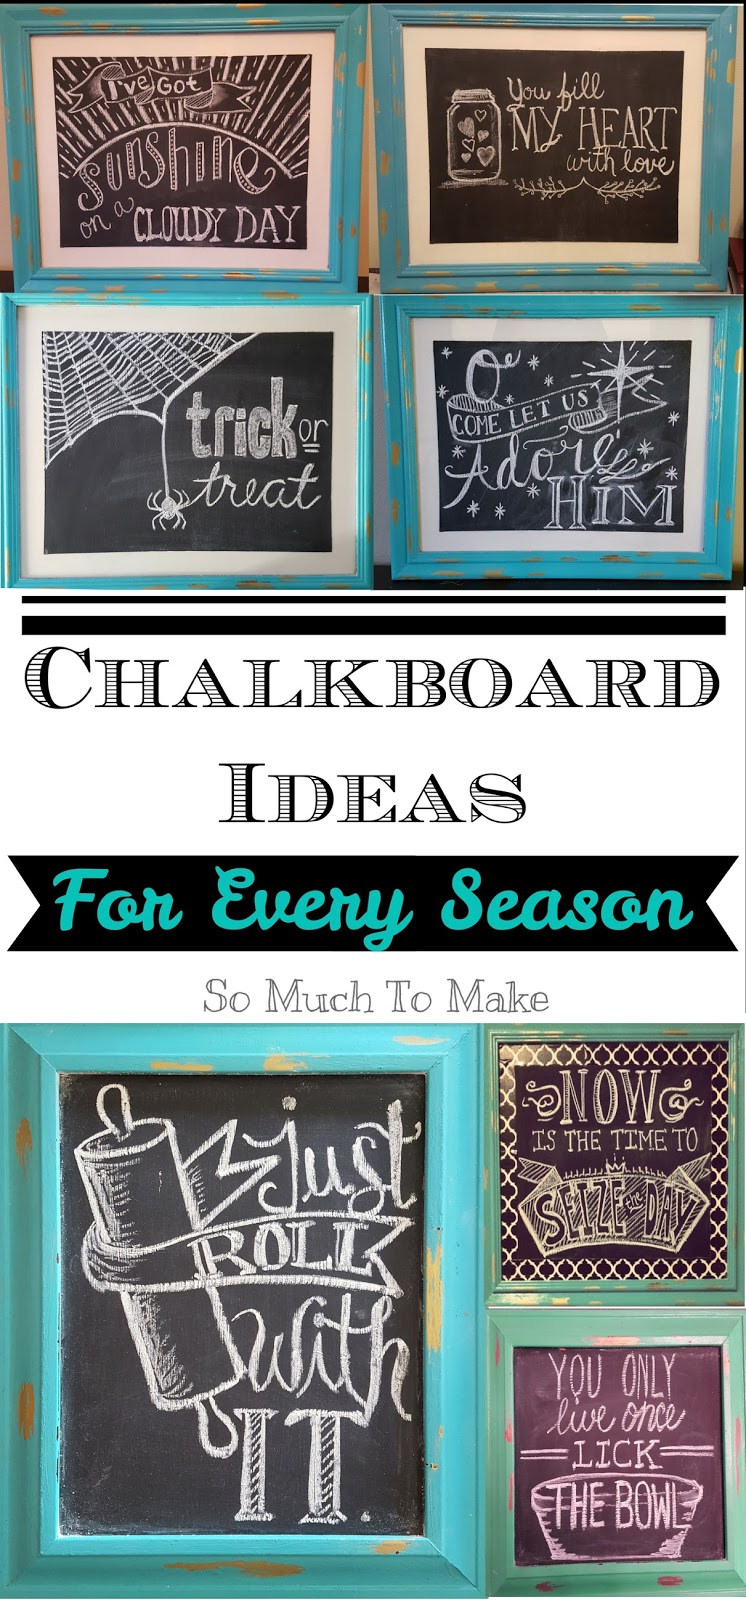 Chalkboard Ideas for Every Season   So Much To Make